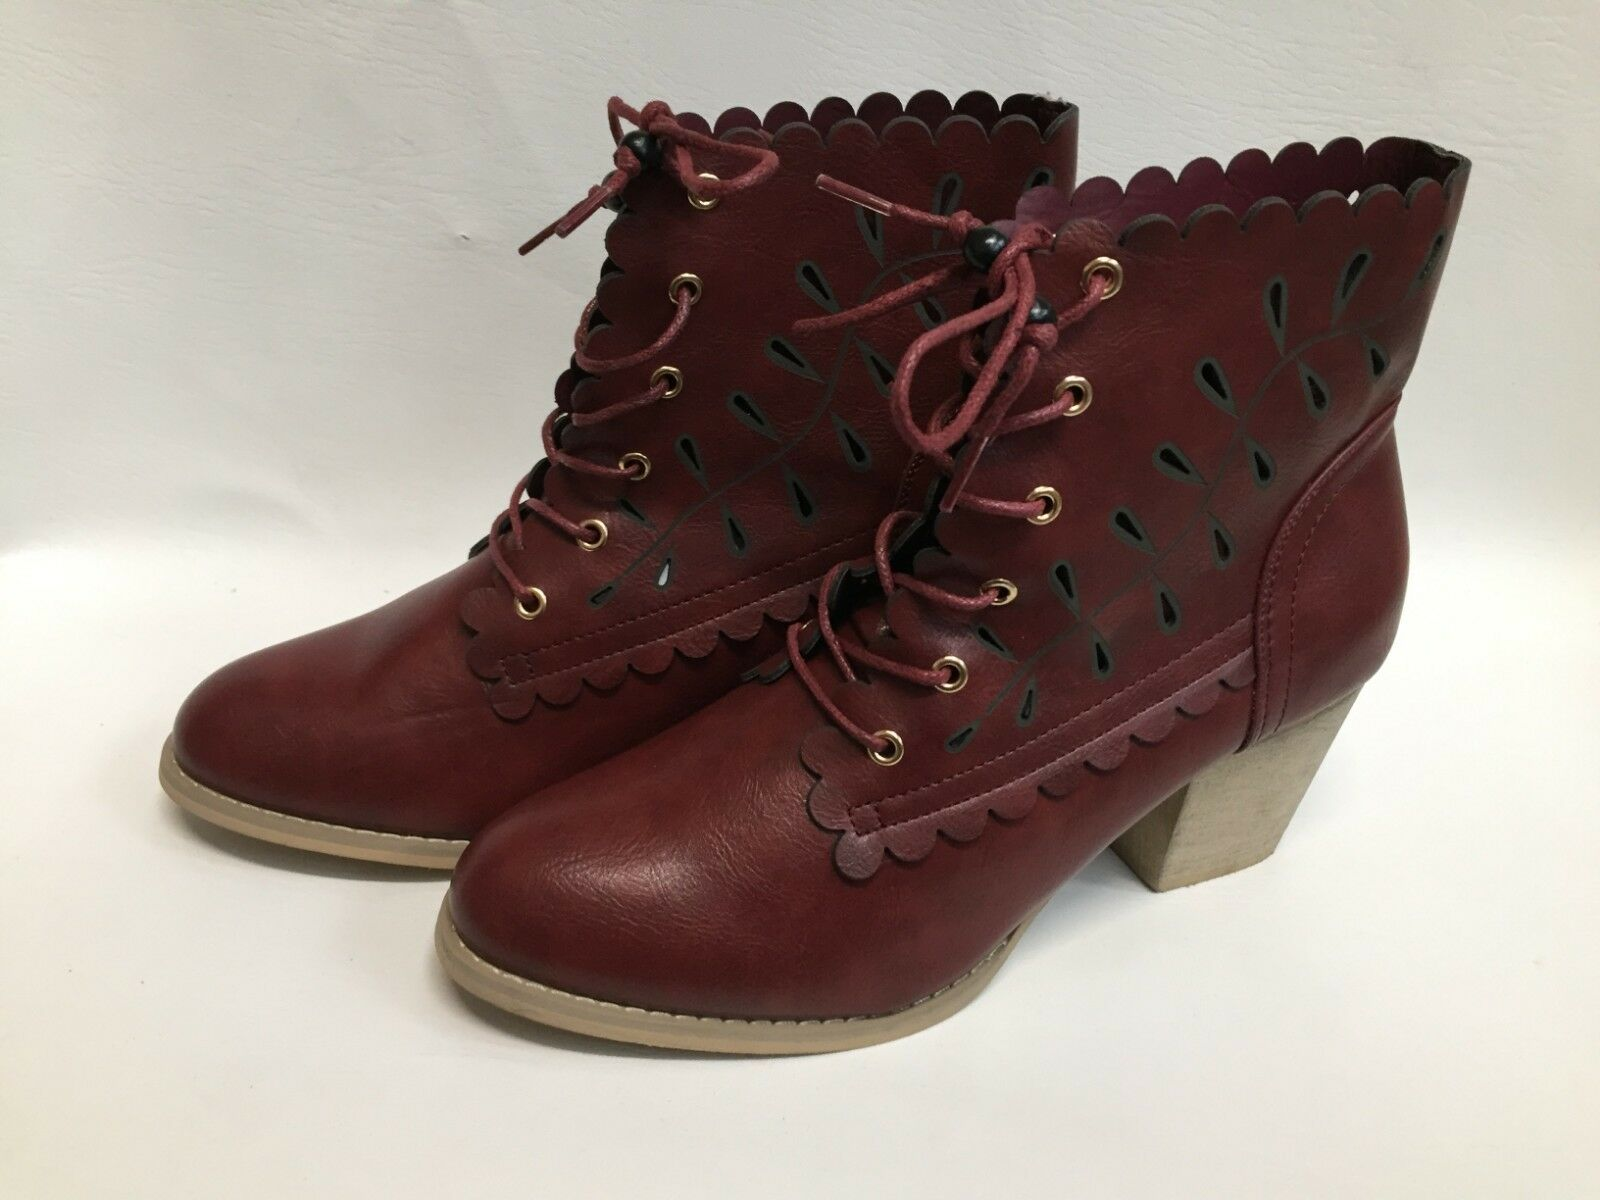 New Ladies Joe Browns Burgundy Cut Out Lace Up Ankle Boots FREE UK P&P